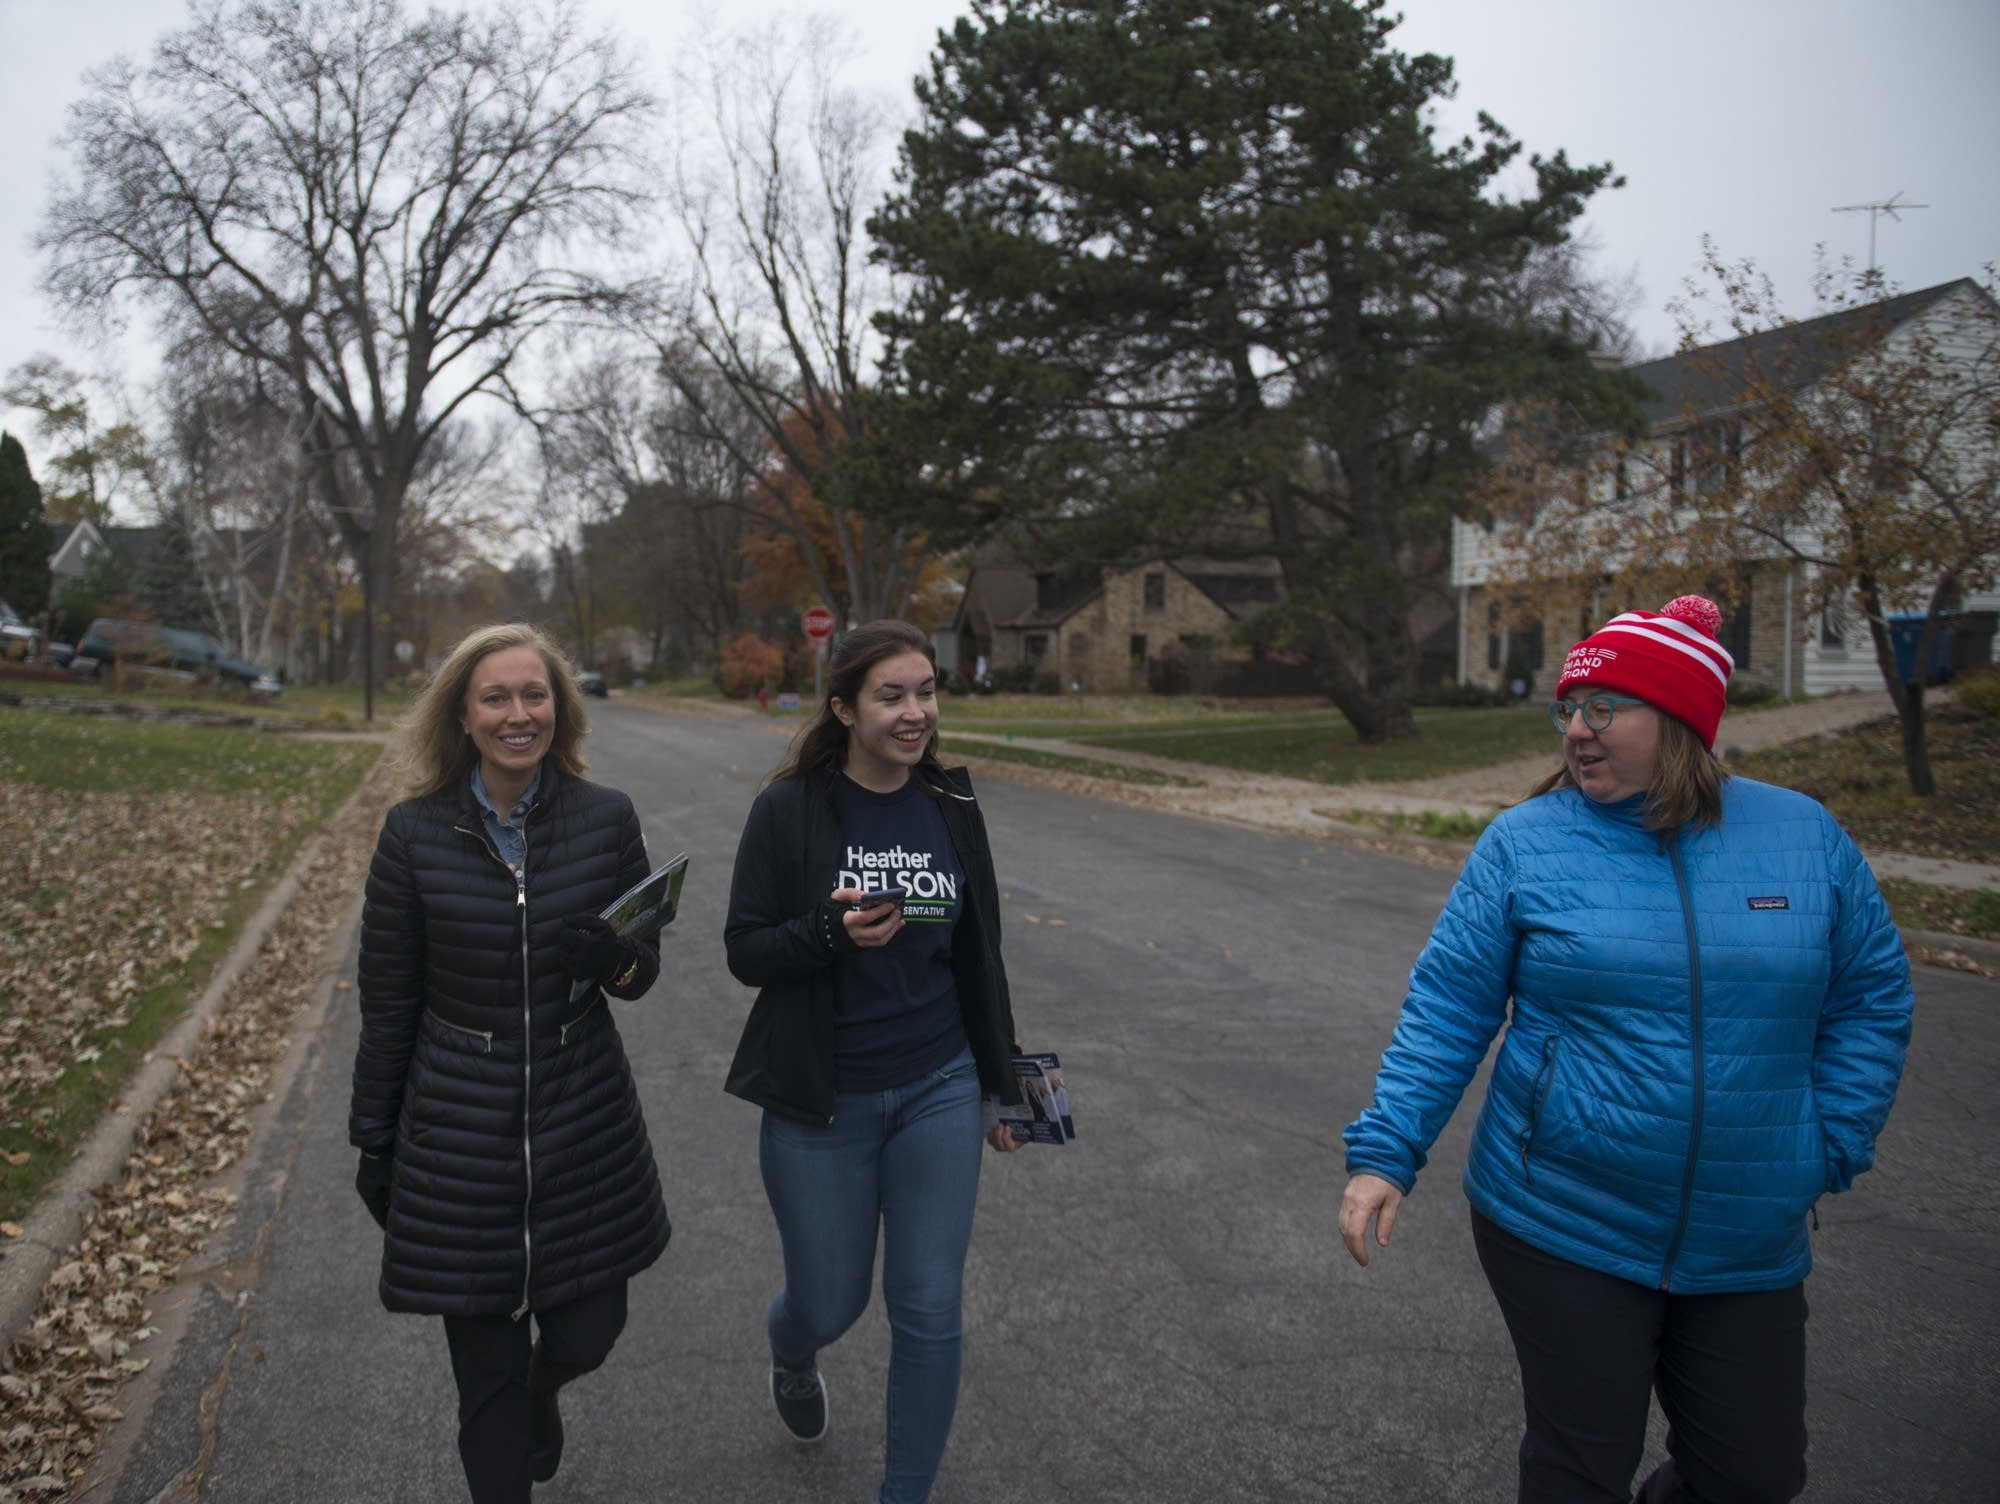 Heather Edelson walks down the street with Macy Rooney and Cathy Cozad